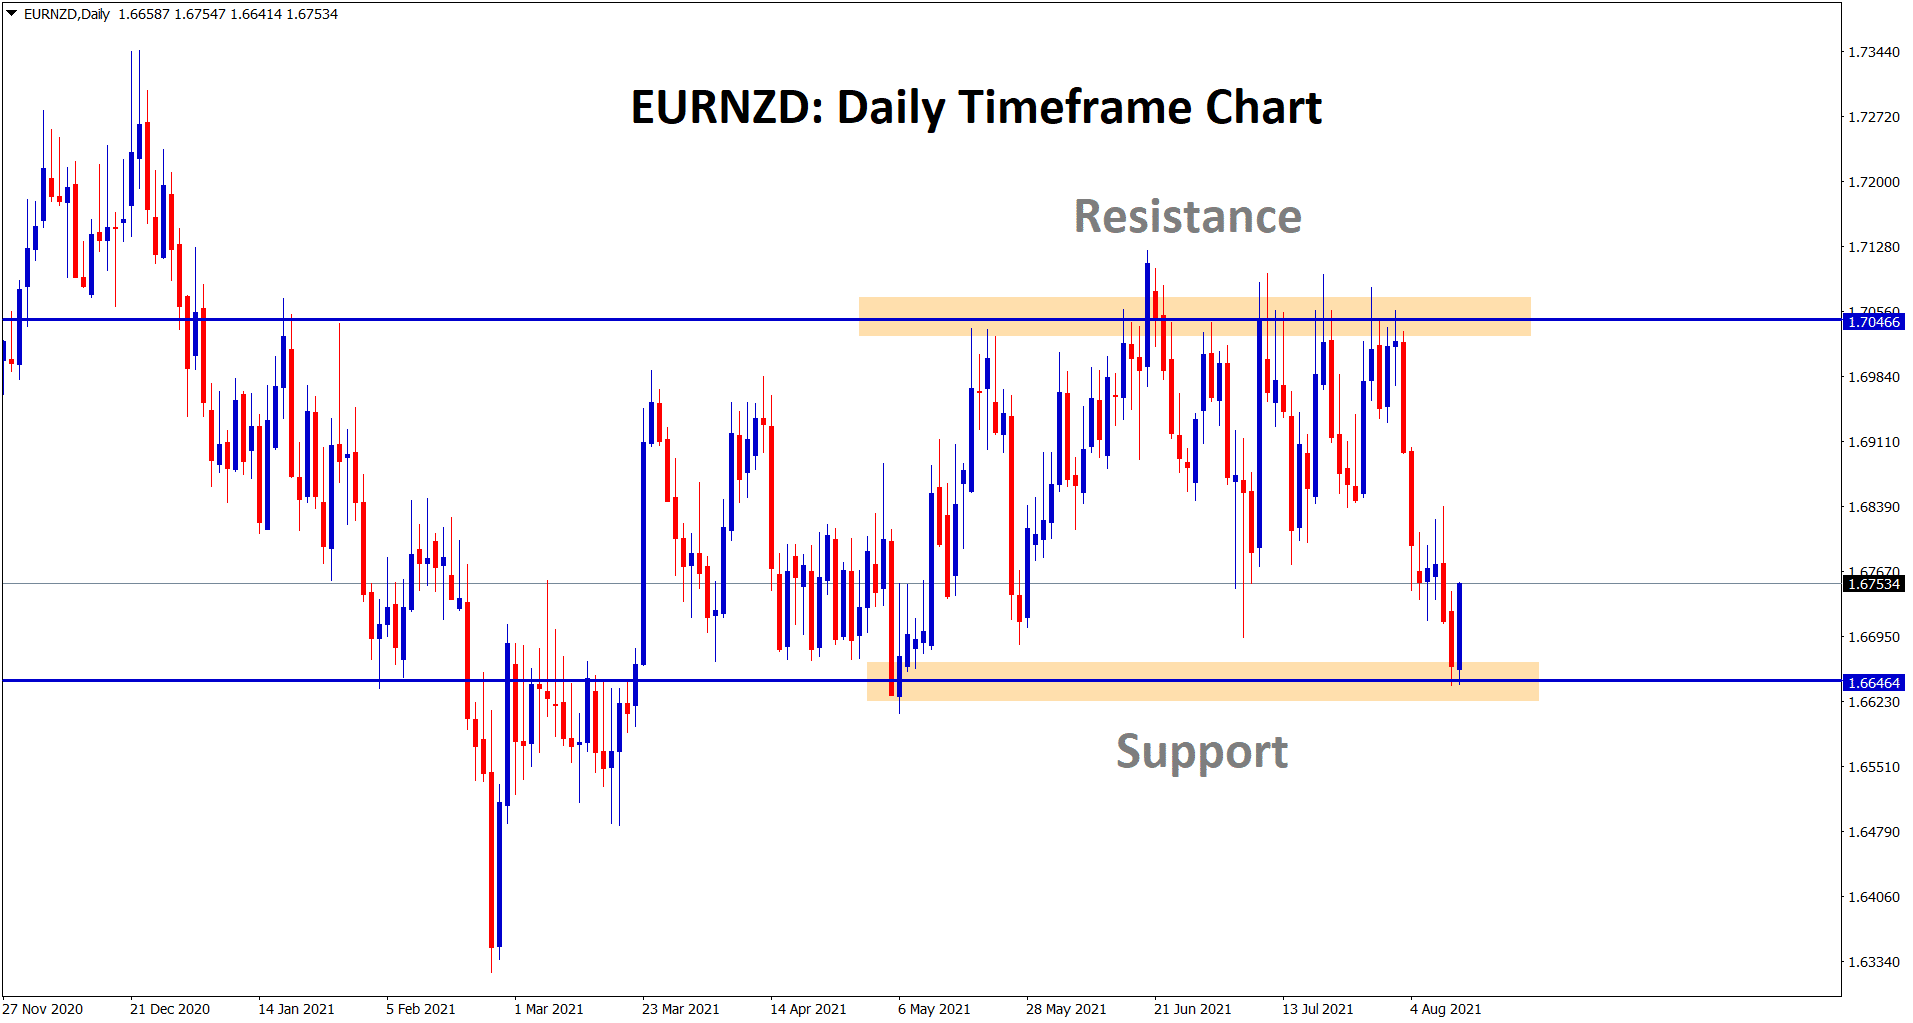 EURNZD bounces back harder from the support area today.